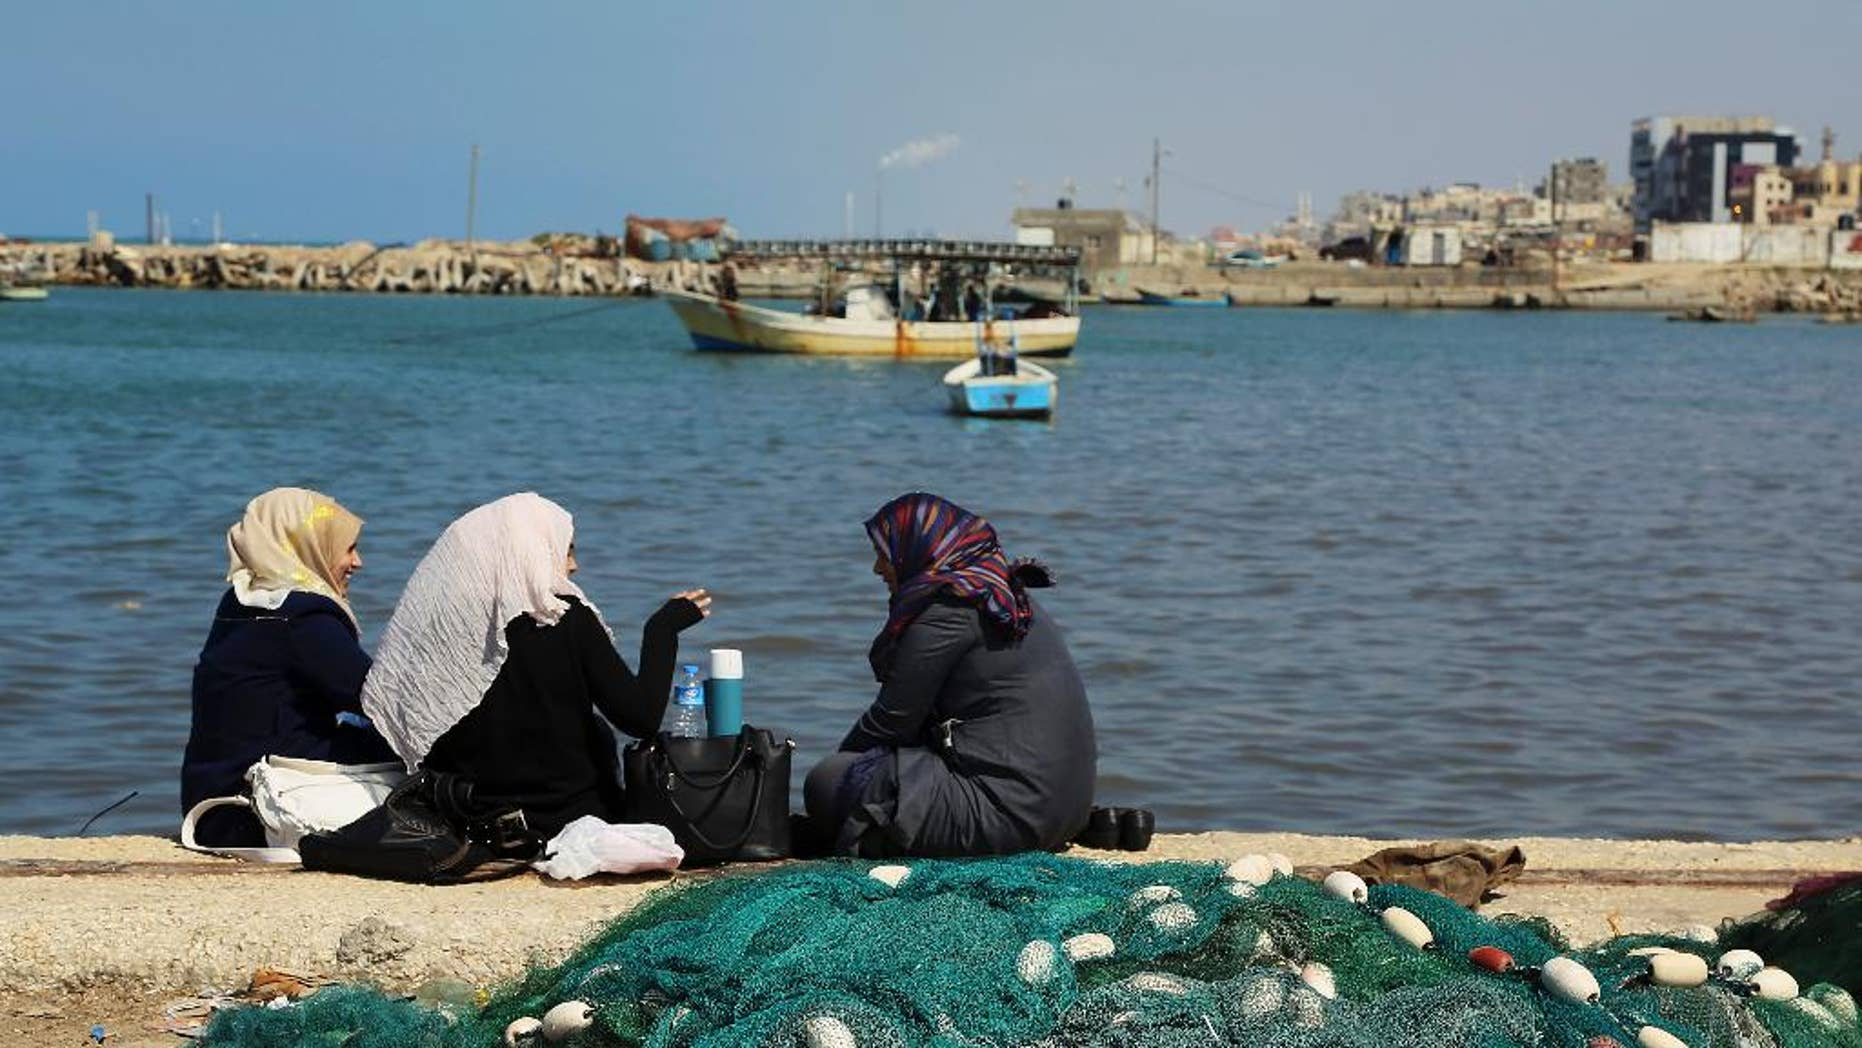 Palestinian women chat while enjoying the sunny weather at the fishermen's port in Gaza City in the northern Gaza Strip on Thursday, March 5, 2015. (AP Photo/Adel Hana)